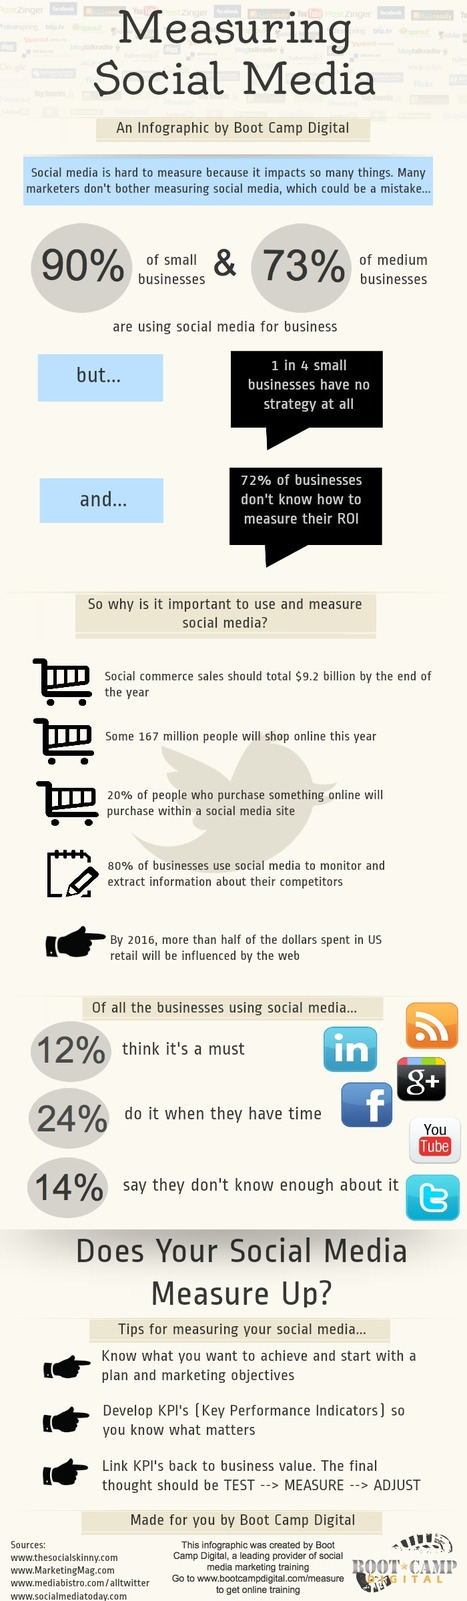 How Do You Measure Social Media ROI? #INFOGRAPHIC | MarketingHits | Scoop.it